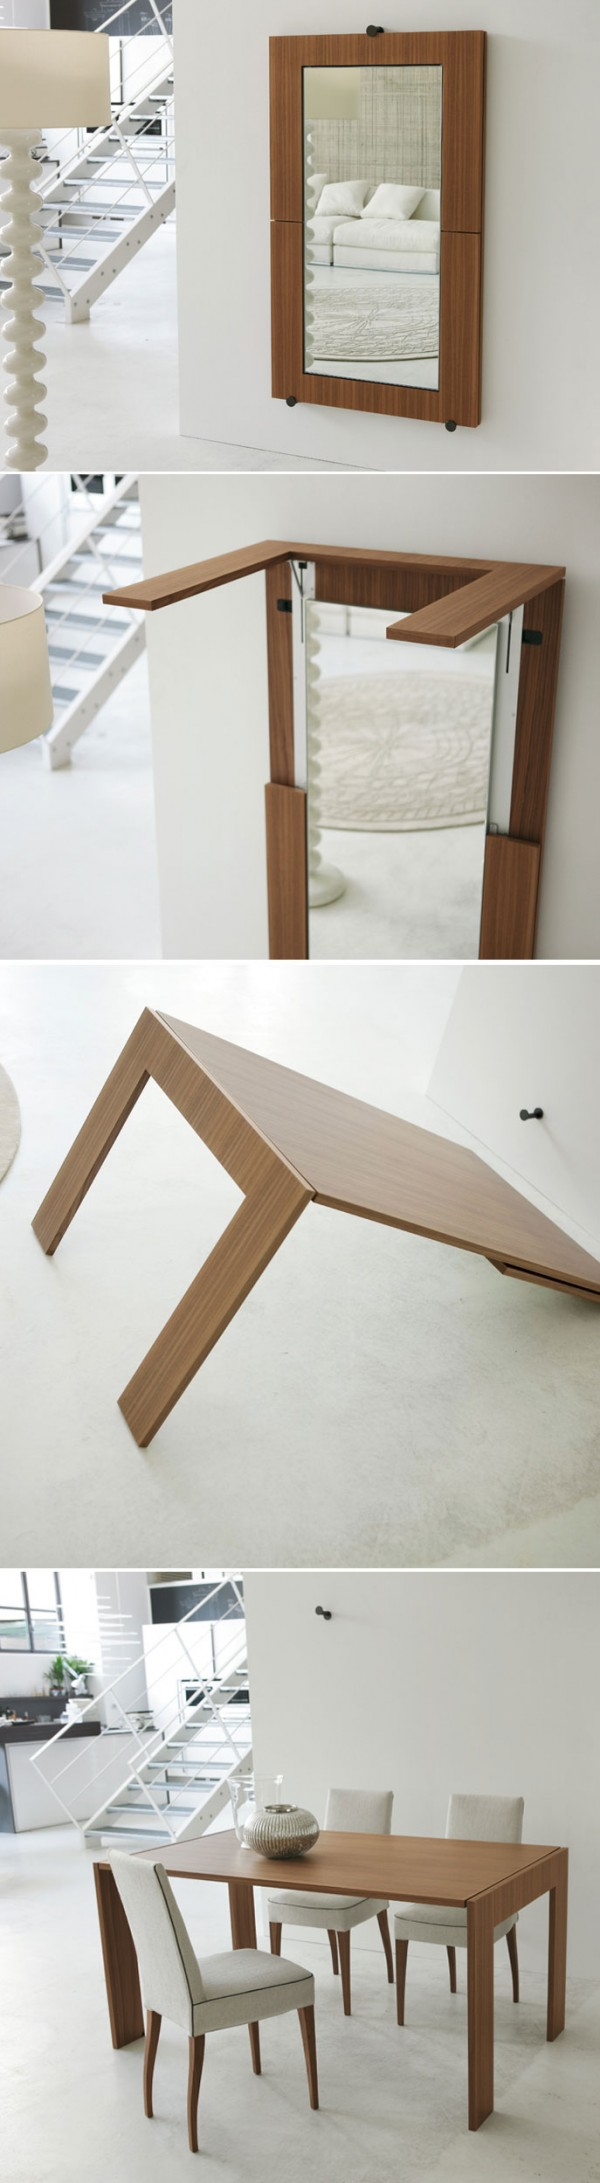 13-Mirror-dining-table